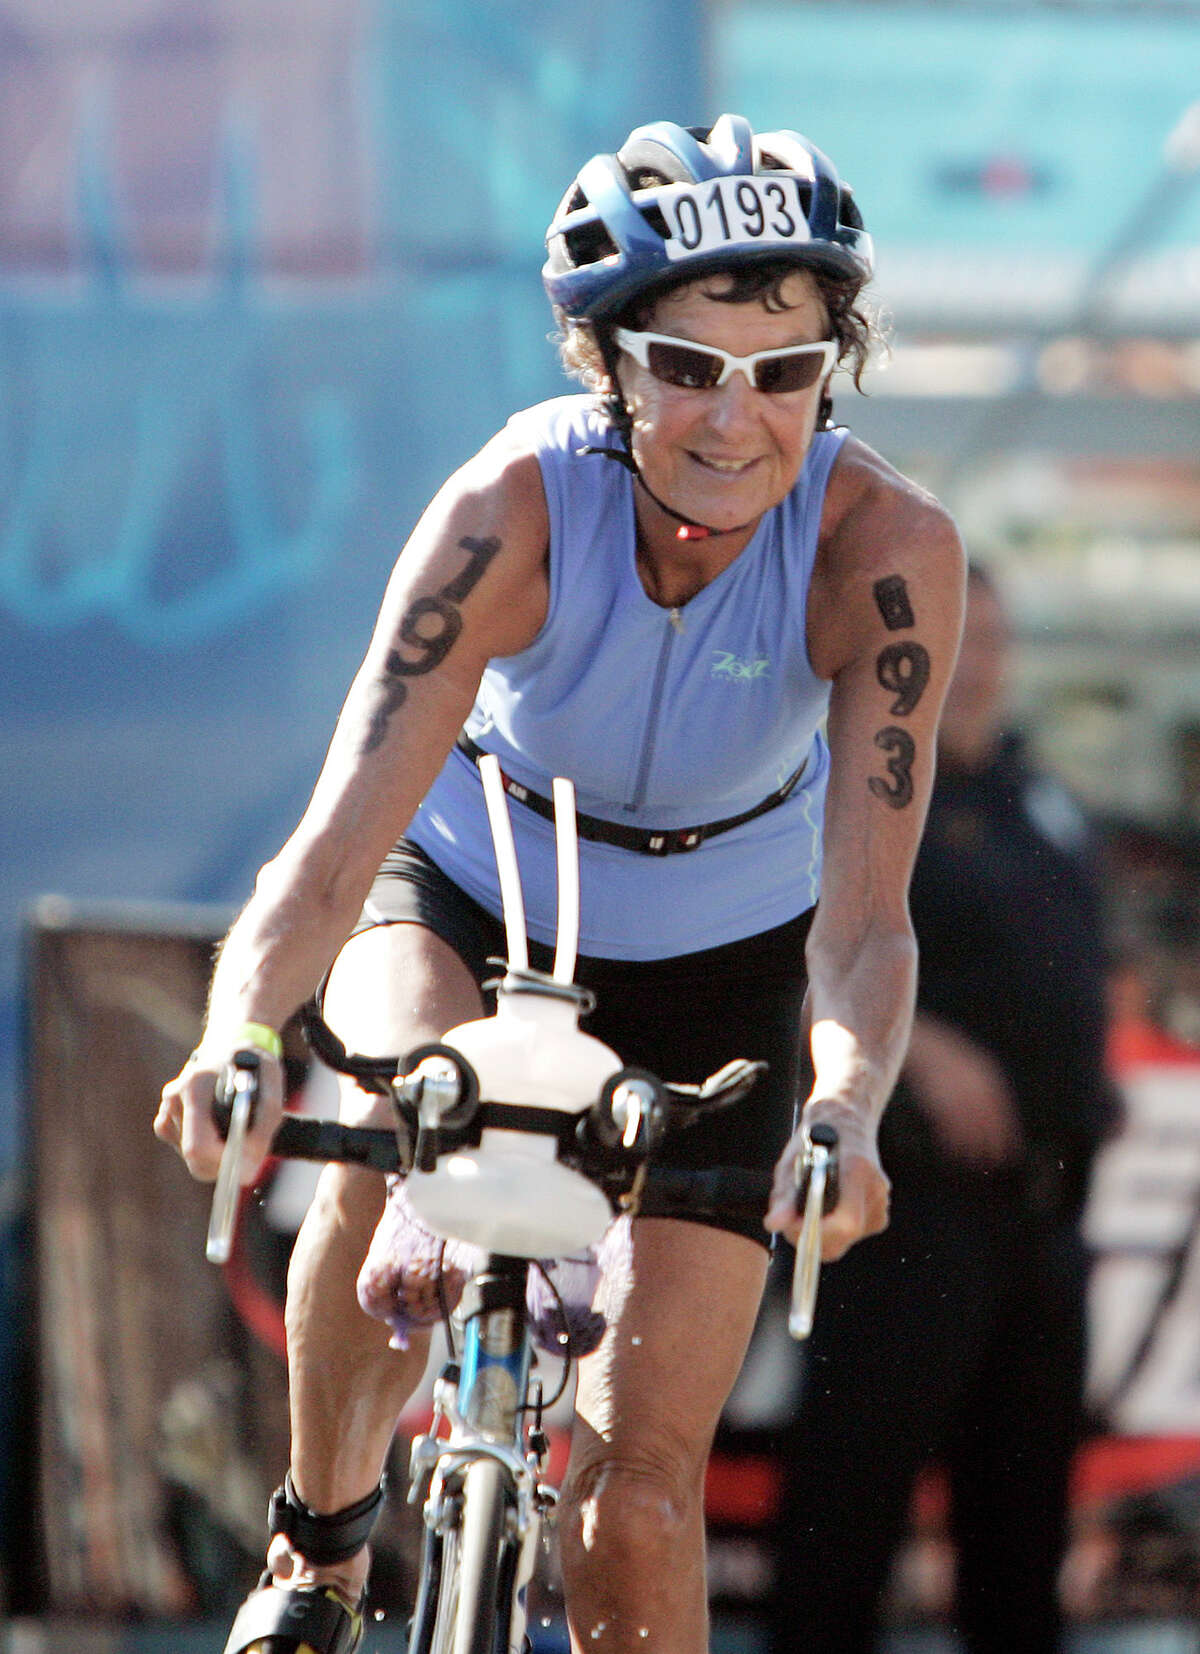 Sister Madonna Buder, 77, of Spokane, Wash., begins the bike portion Saturday, Oct. 13, 2007, in Kailua-Kona, Hawaii, at the Ironman Triathlon World Championship. Over 1,600 athletes from nearly 50 countries were expected to compete in the annual triathlon--a 140.6 mile endurance event that includes a 2.4-mile ocean swim, 112-mile bicycle race and a 26.2-mile run. (AP Photo/Elaine Thompson)